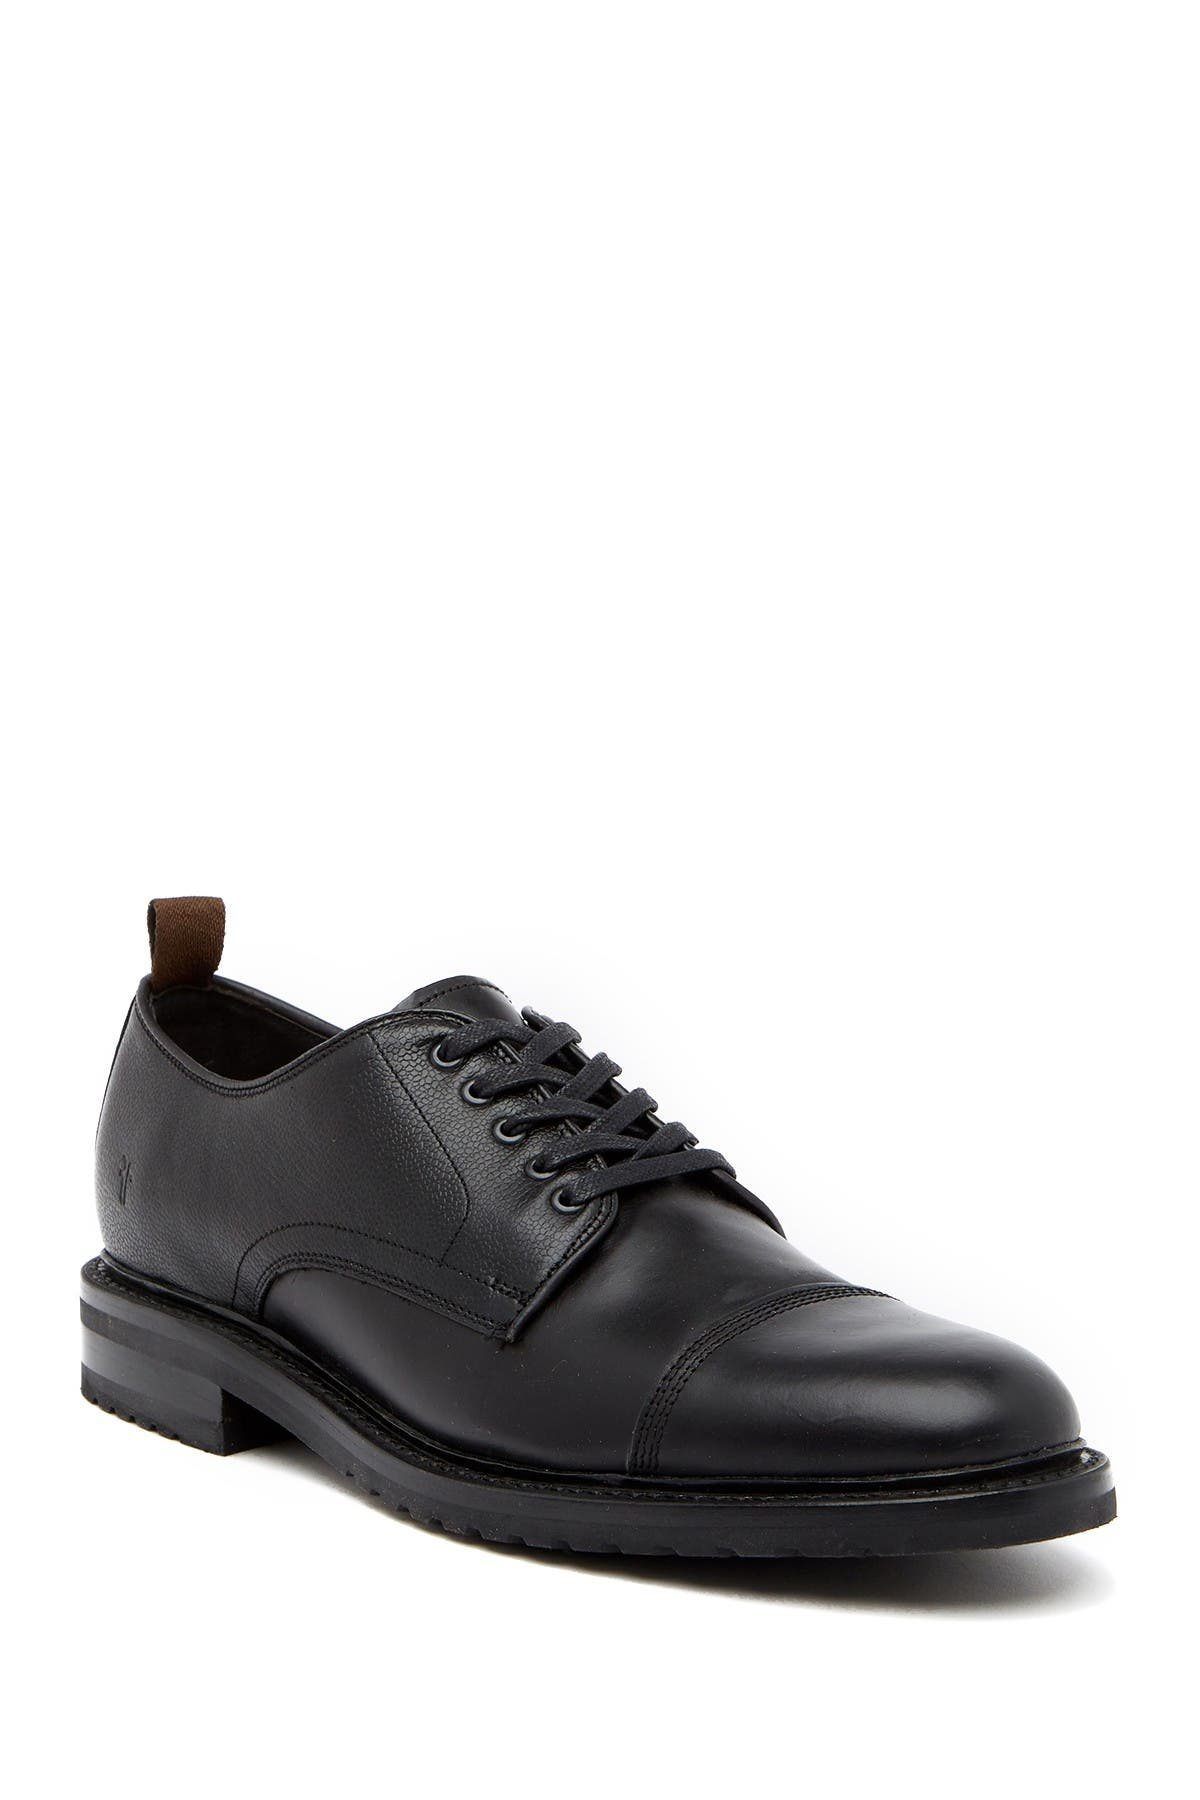 Image of Frye Officer Leather Oxford